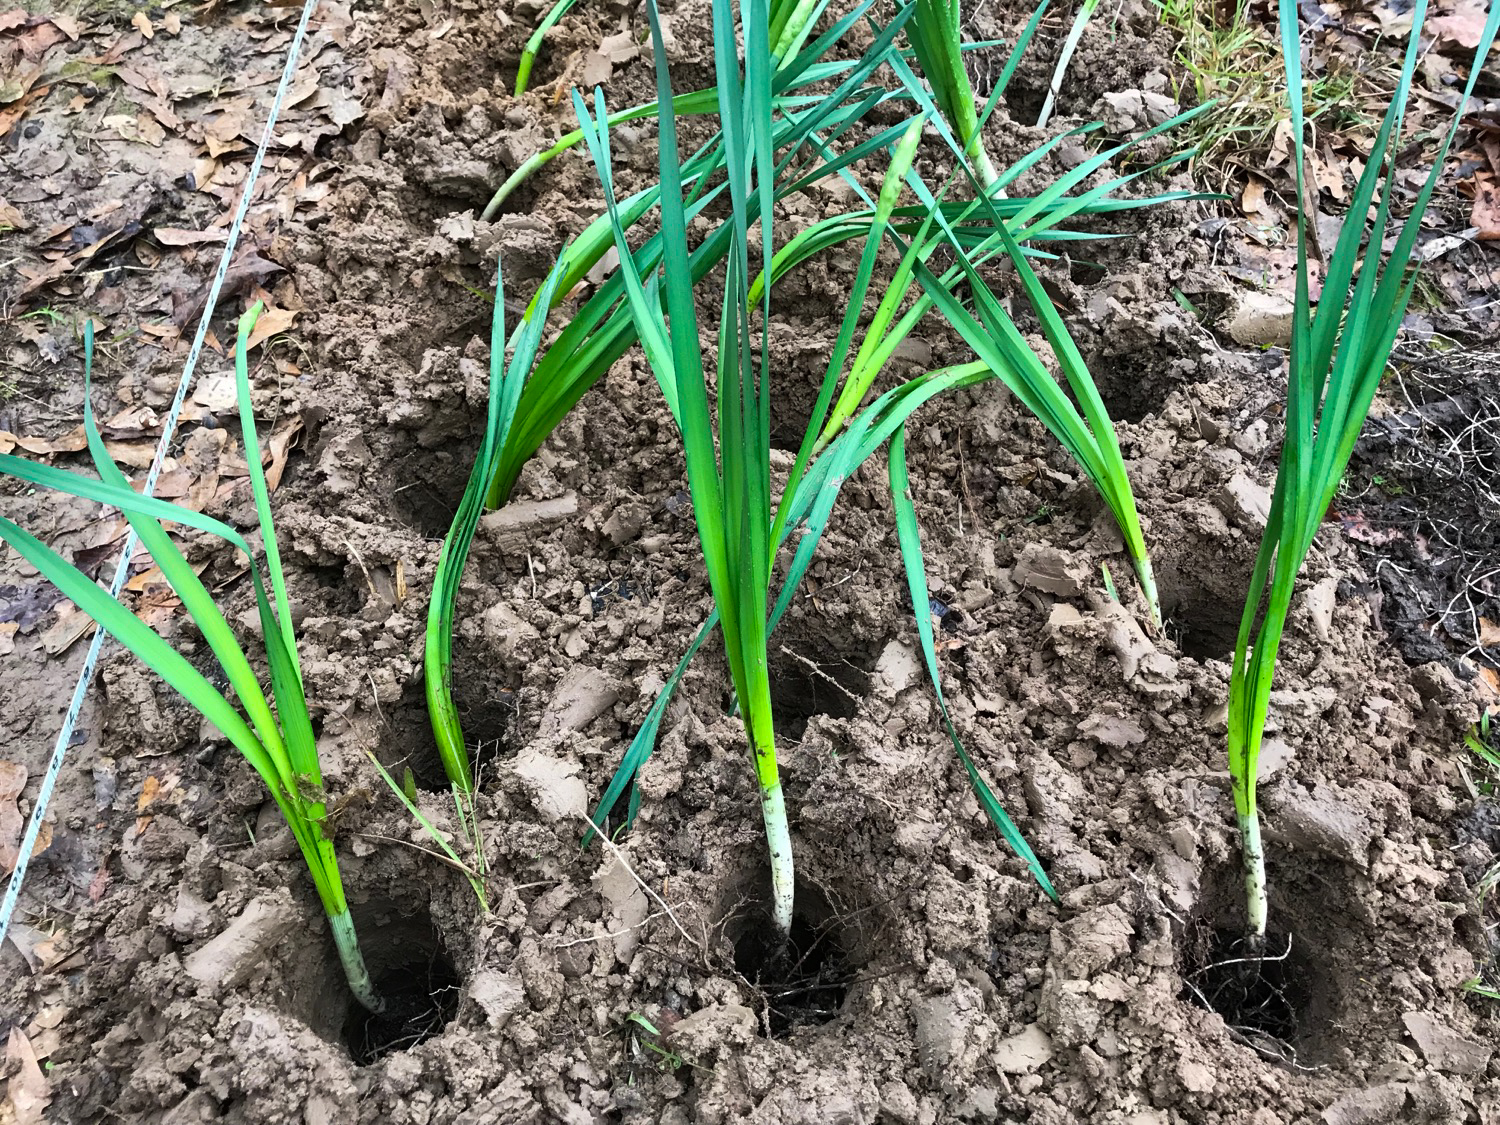 I know many advise dividing  Narcissus  once dormant, but I've had success moving them in the green. In this image you can see the circular holes made by the auger and my attempts to get the bulbs to the same depth. After sticking them in the hole, I use a hoe to replace the soil back.